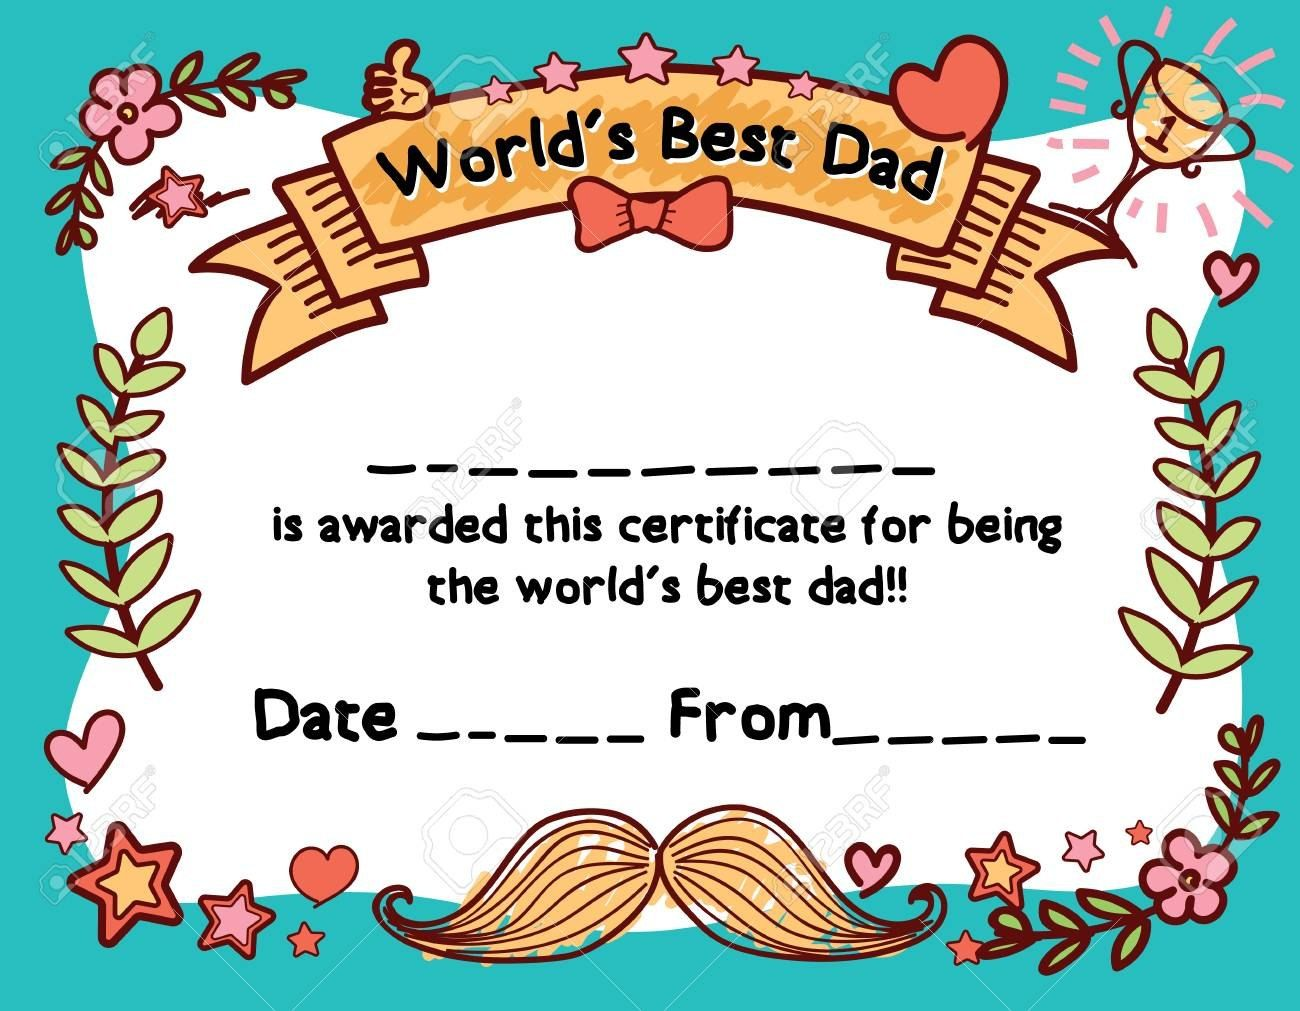 World S Best Dad Award Certificate Template For Father S Day Throughout Player Of The Day Ce Certificate Templates Worlds Best Dad Awards Certificates Template